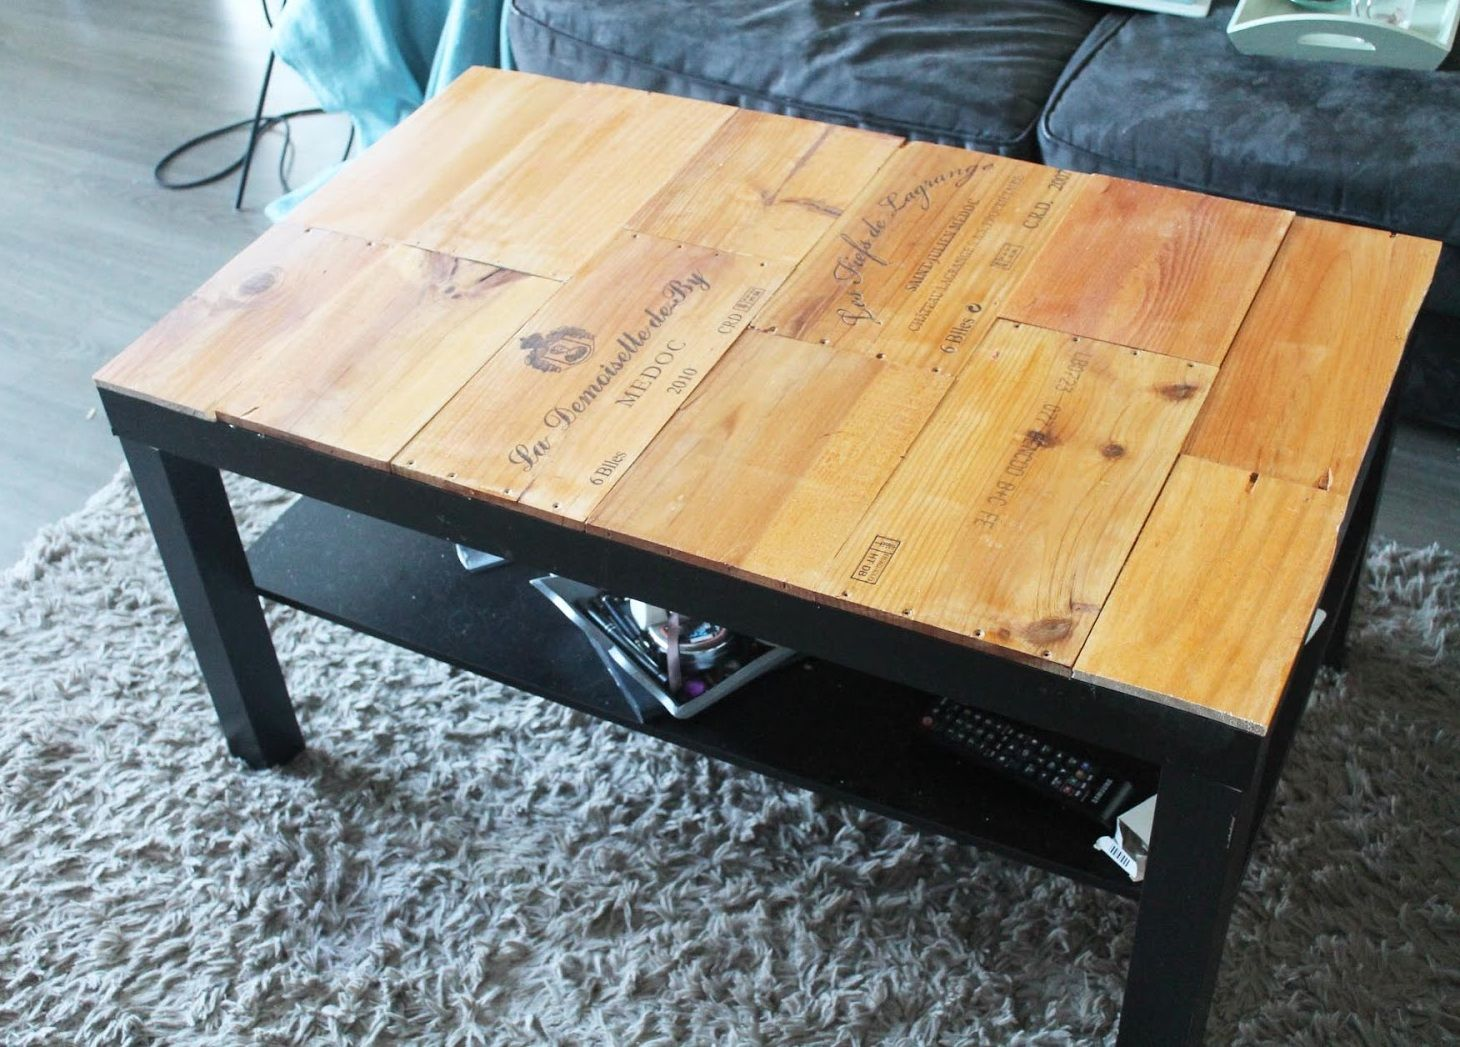 Tuto customiser une table basse avec des caisses de vin m6 d co pinterest table - Meuble en caisse de vin ...